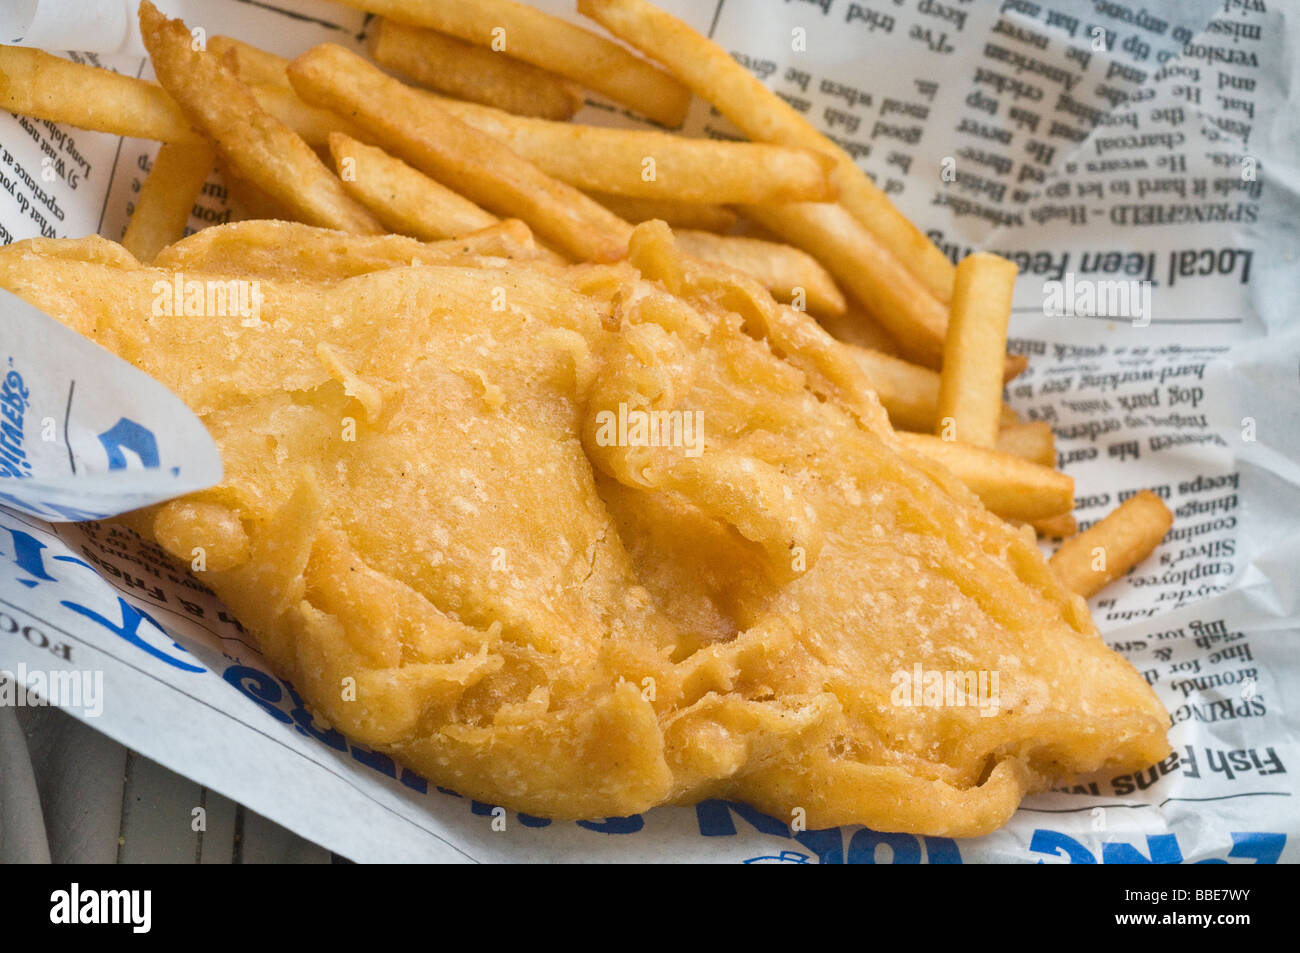 Fried fish and chips on newspaper Stock Photo